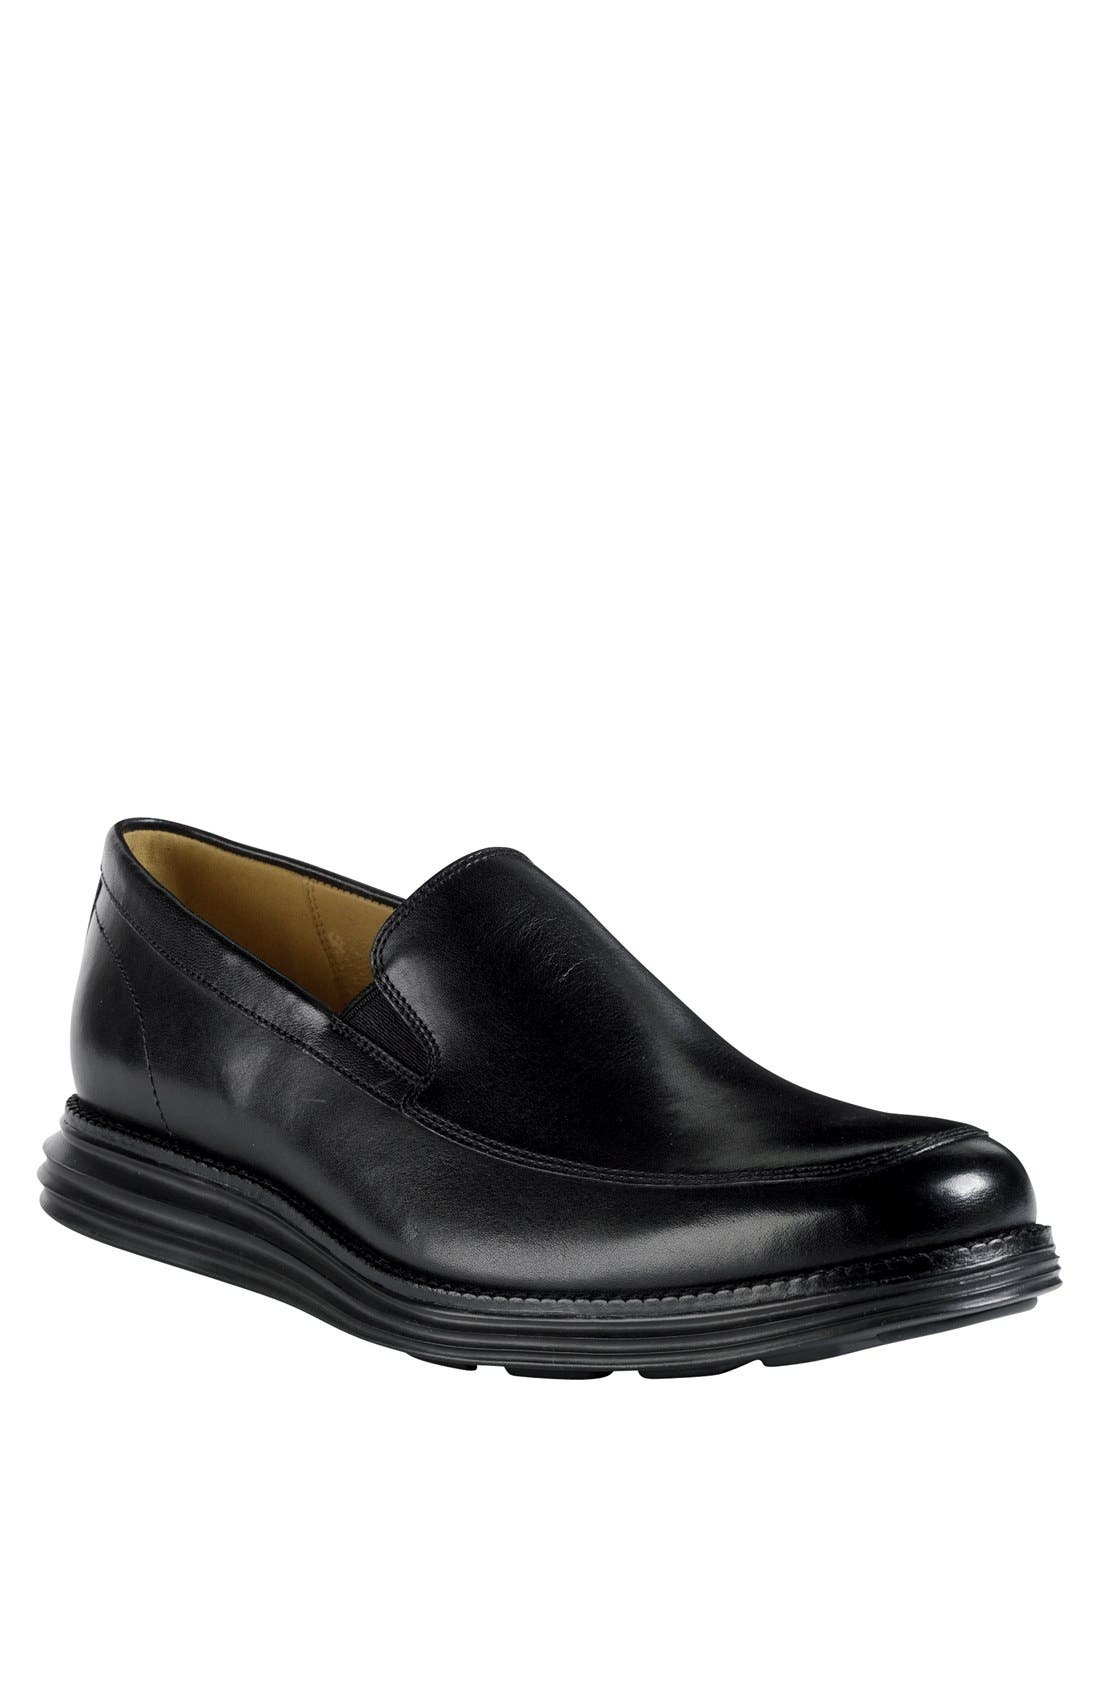 COLE HAAN,                             'LunarGrand' Apron Toe Loafer,                             Main thumbnail 1, color,                             001